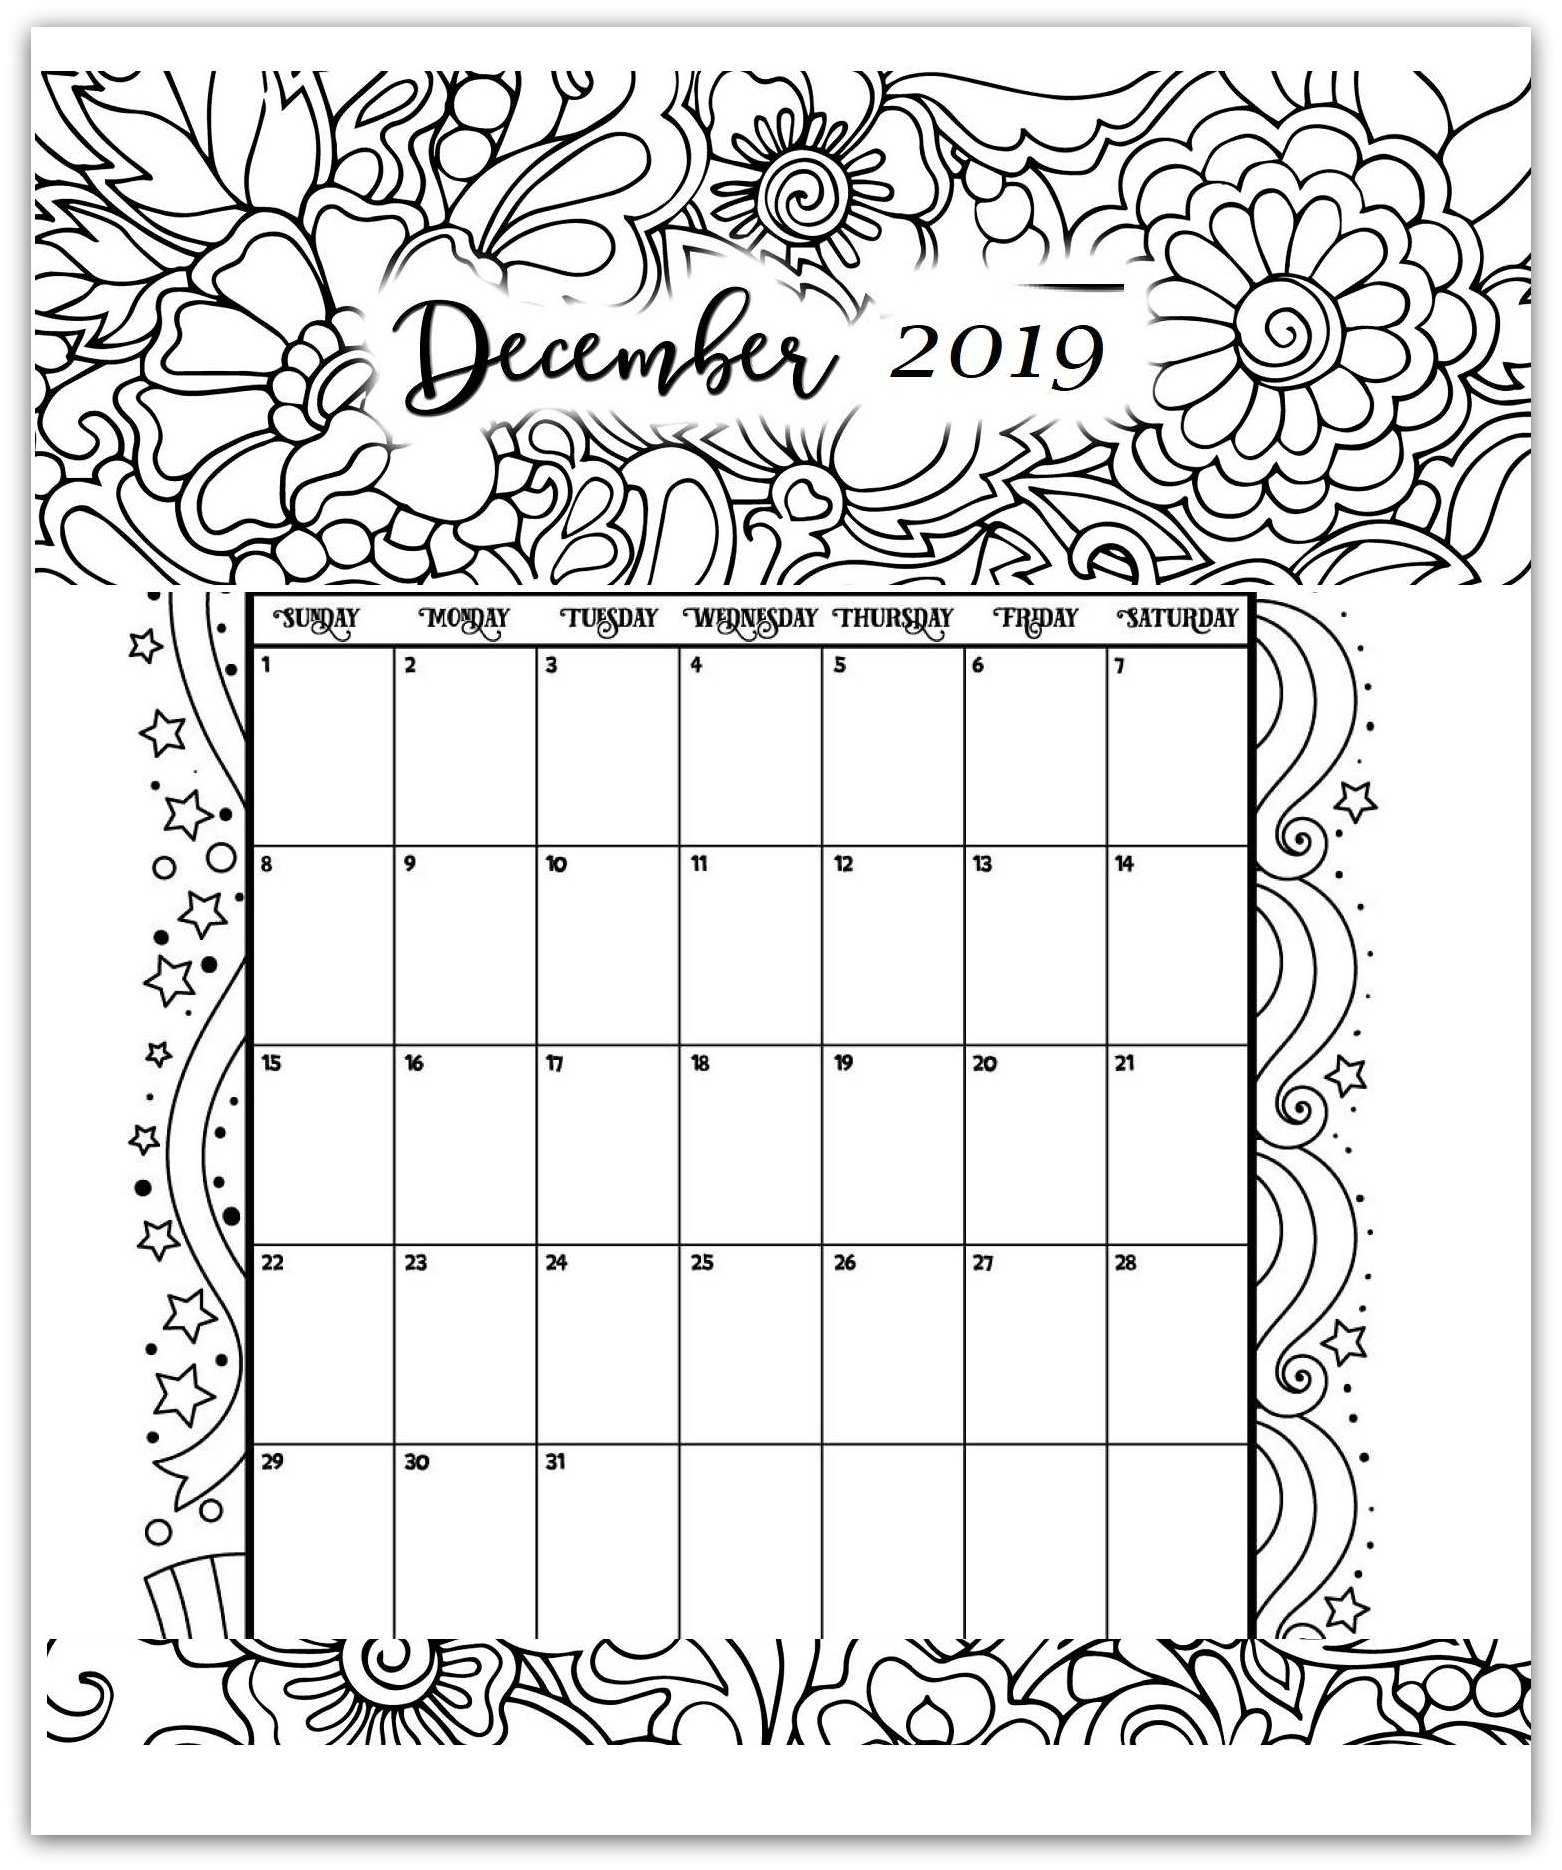 december 2019 coloring page printable